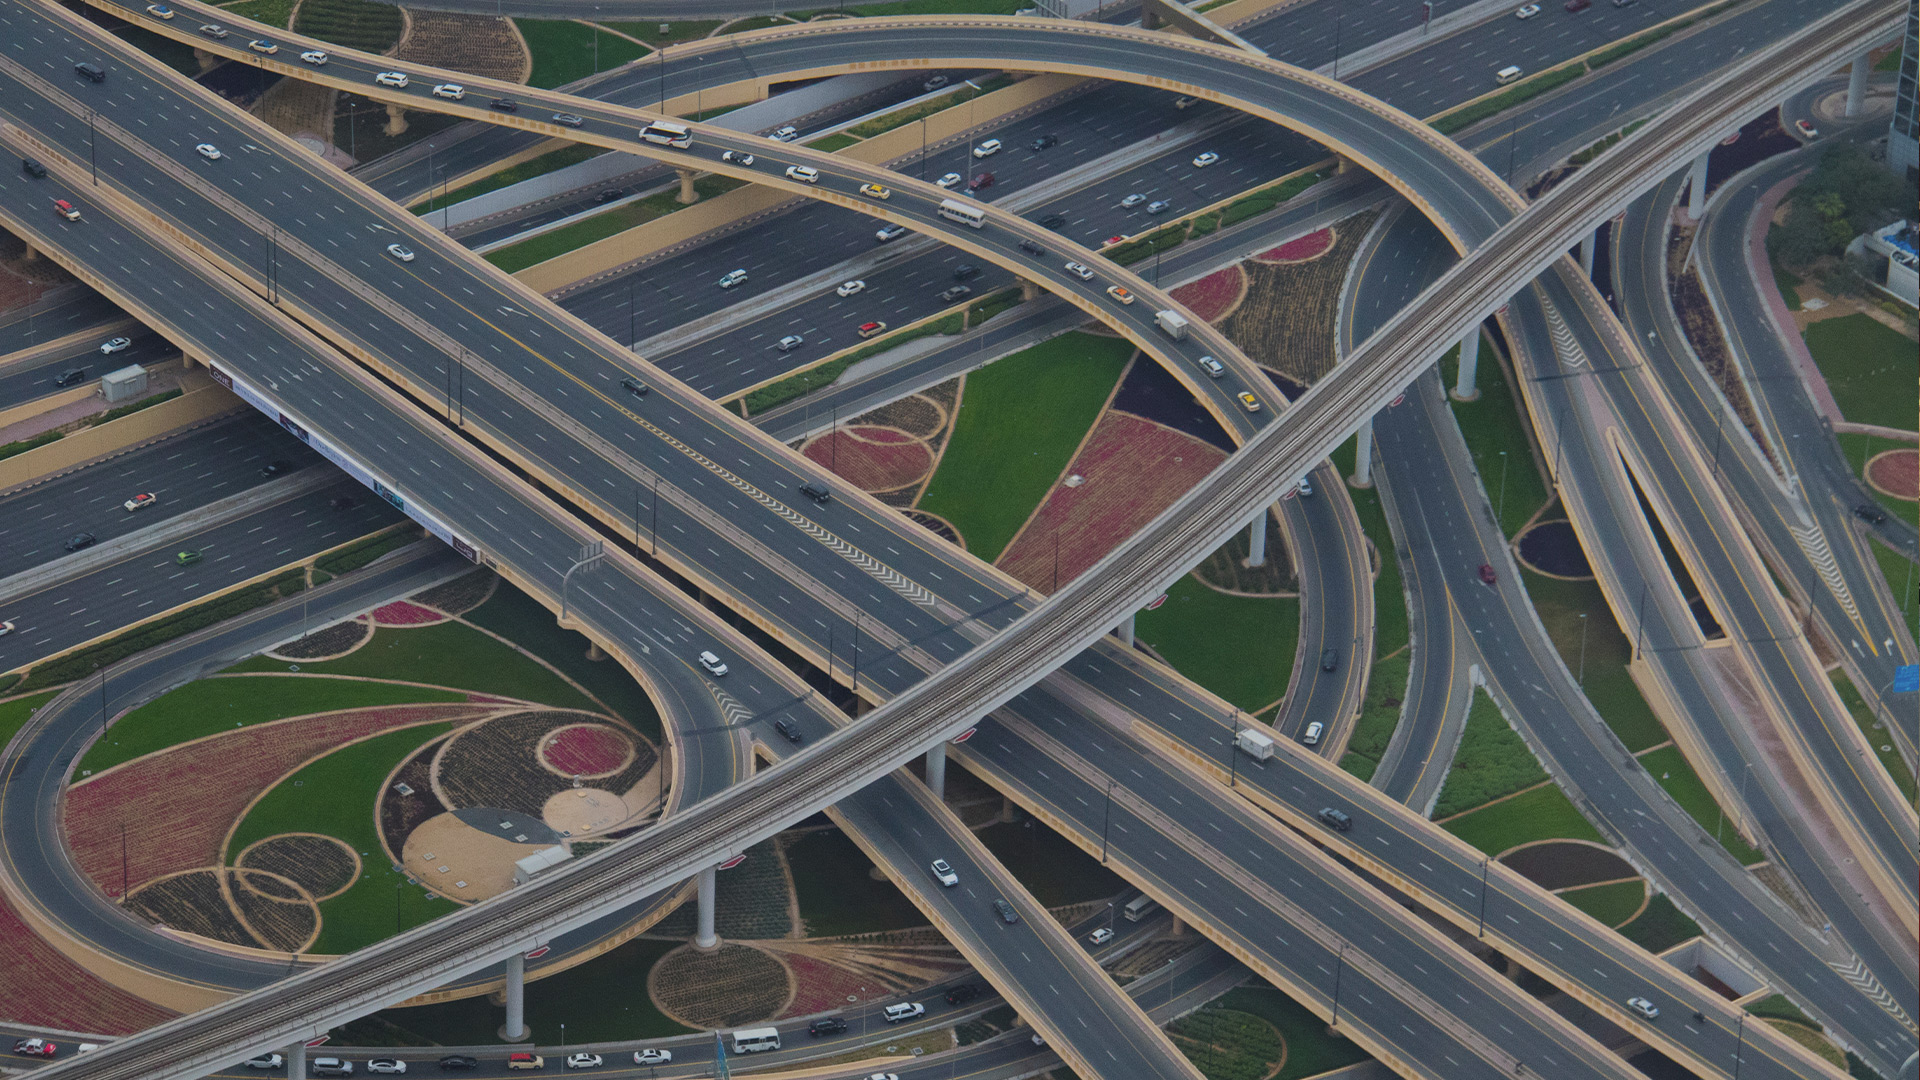 Highways and roads crossing over each other